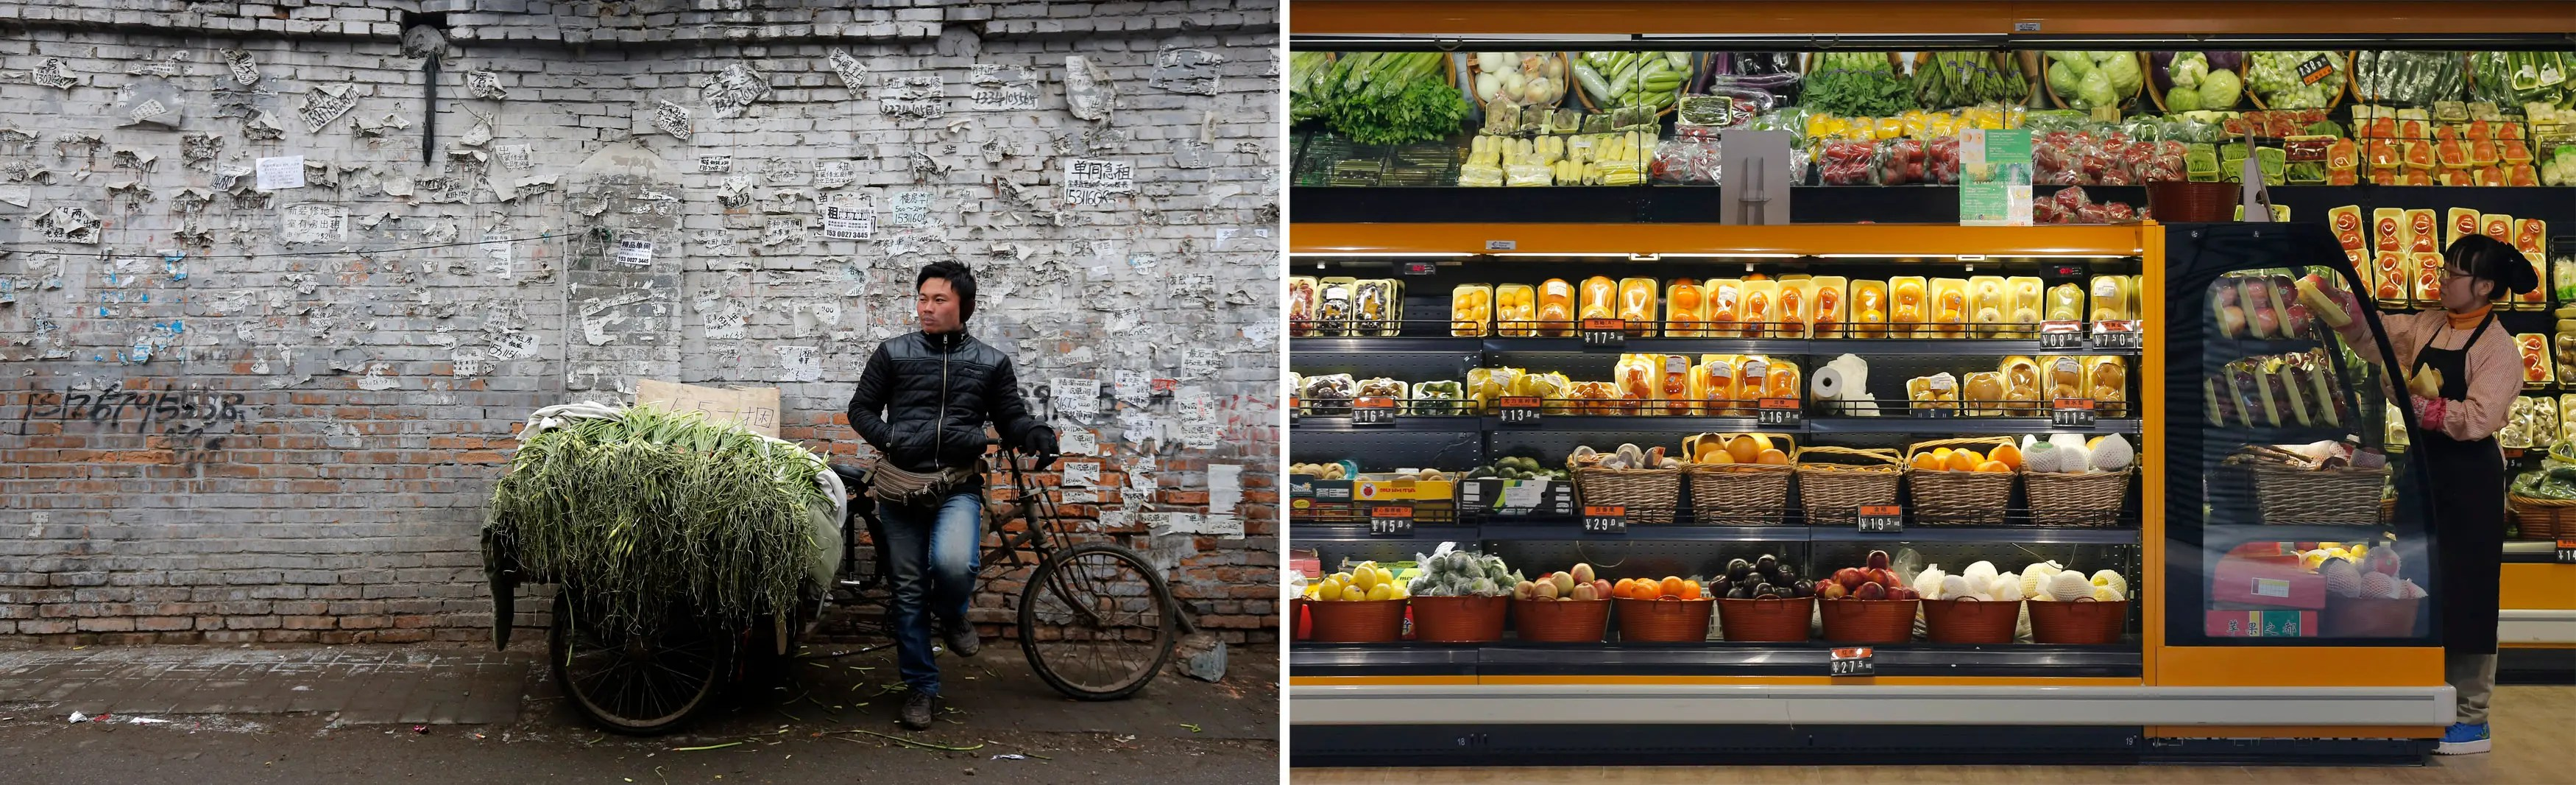 (L) A street vendor sells stems of garlic and (R) a clerk arranges vegetables in a fridge at a supermarket in a wealthy district of Beijing.